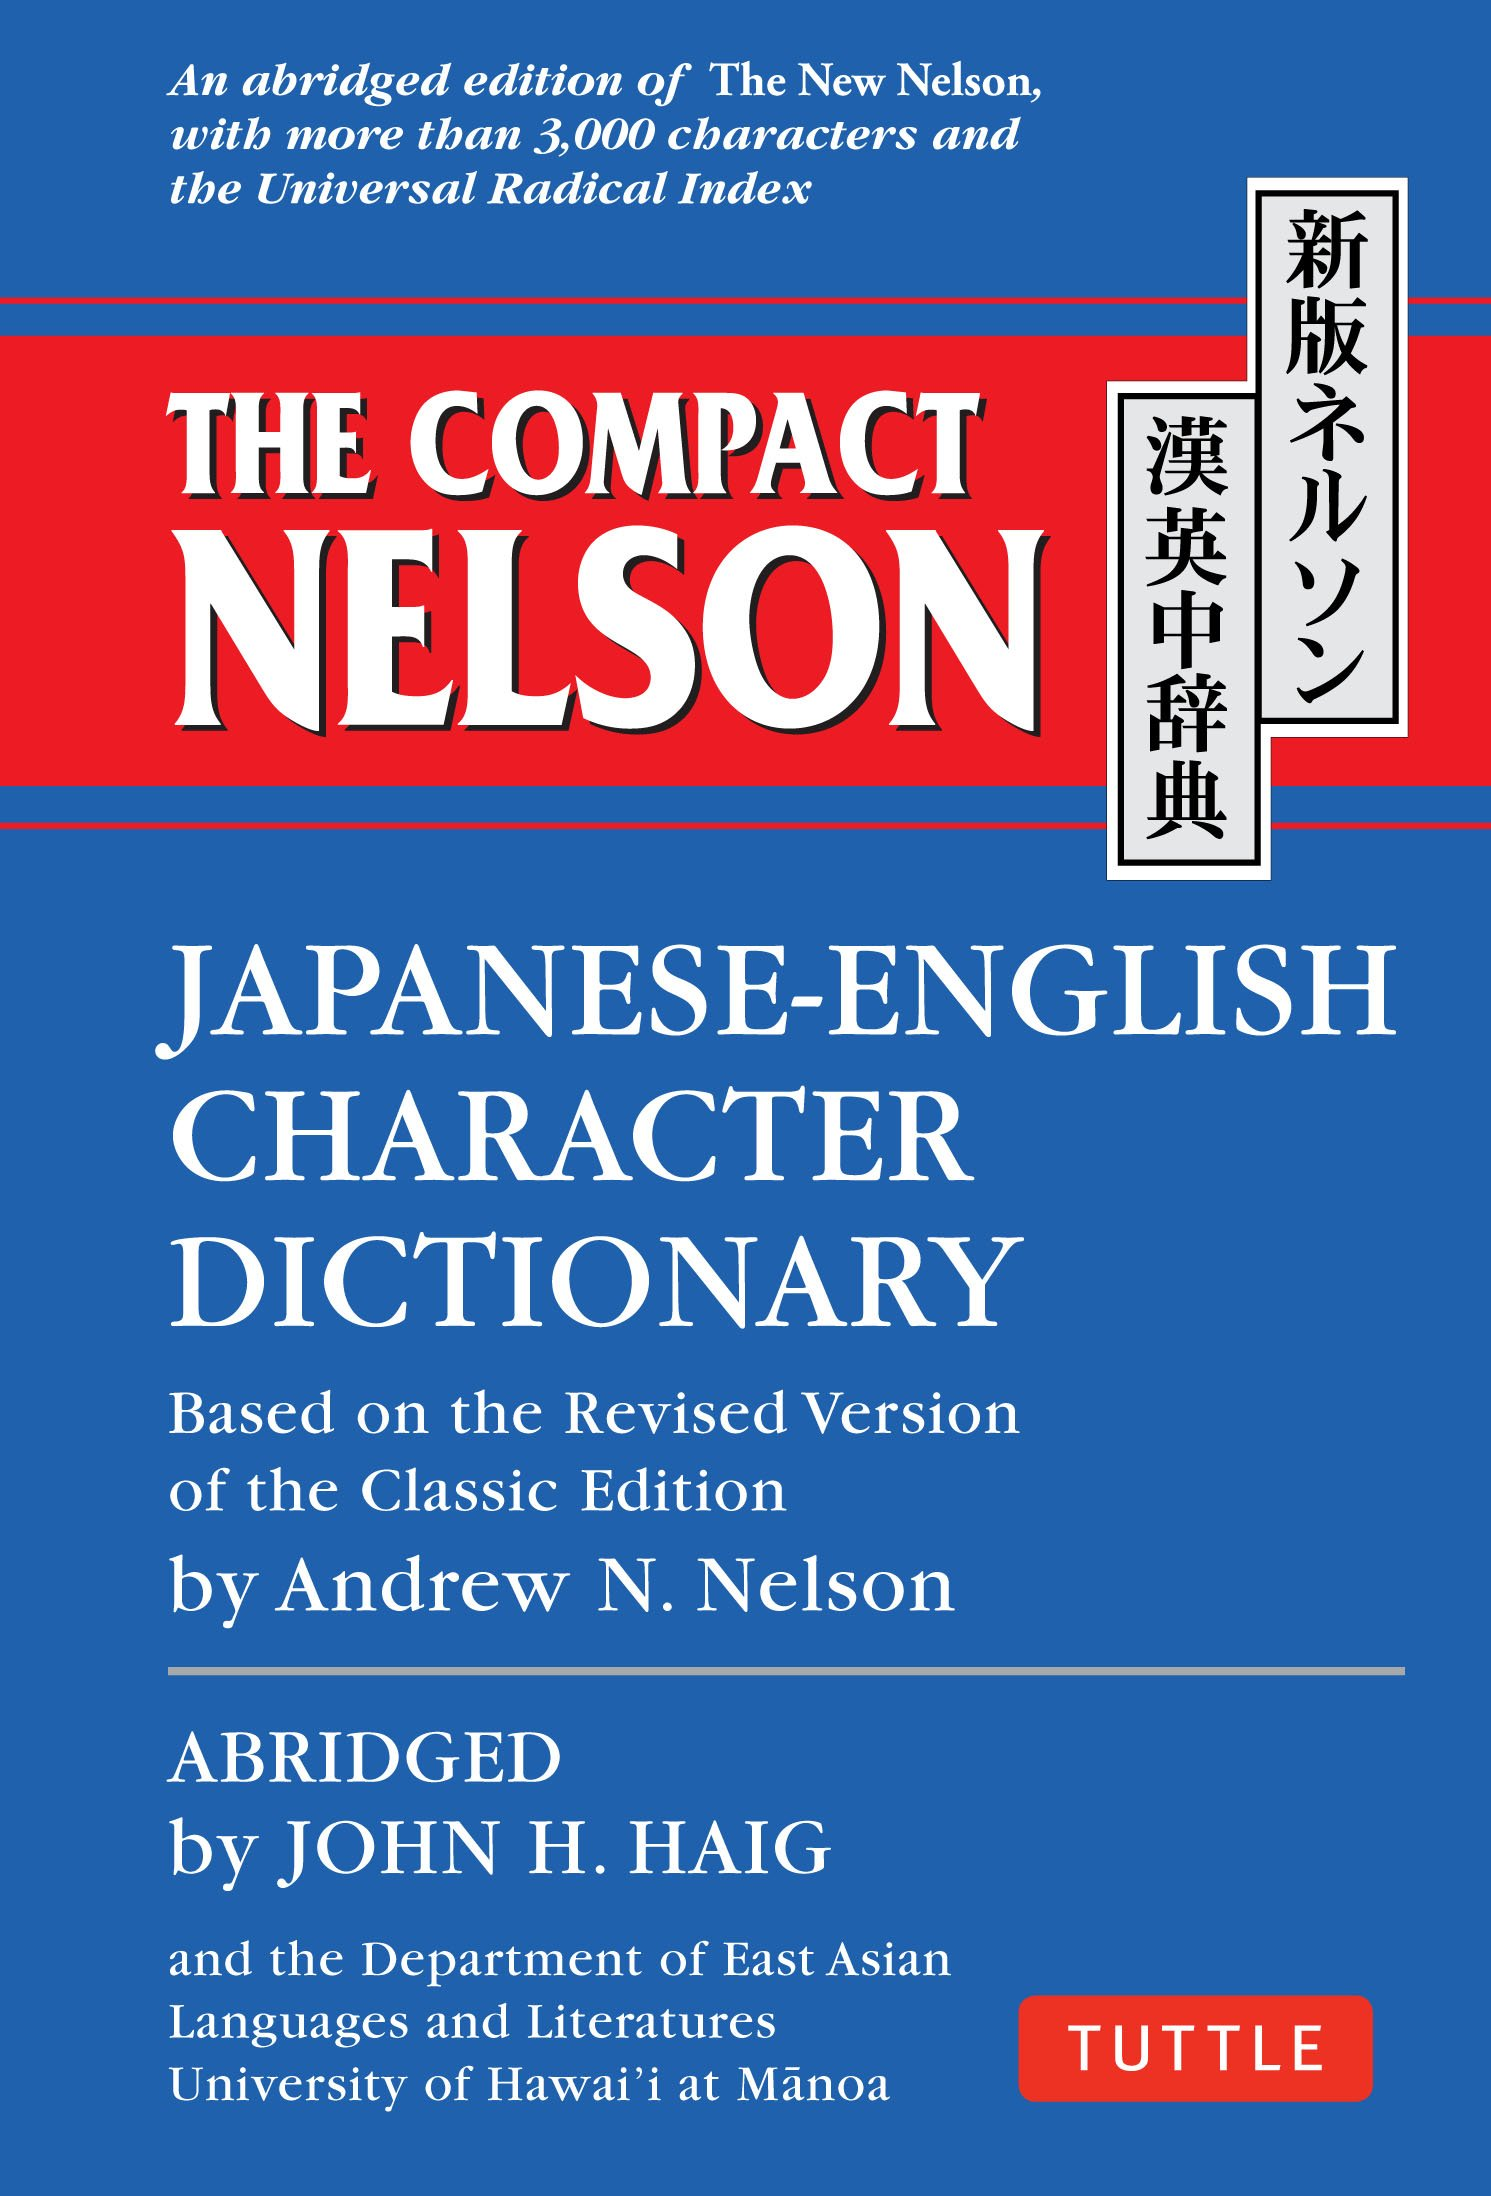 Amazon.com: The Compact Nelson Japanese-English Character Dictionary  (9784805313978): John H. Haig, Andrew N. Nelson: Books